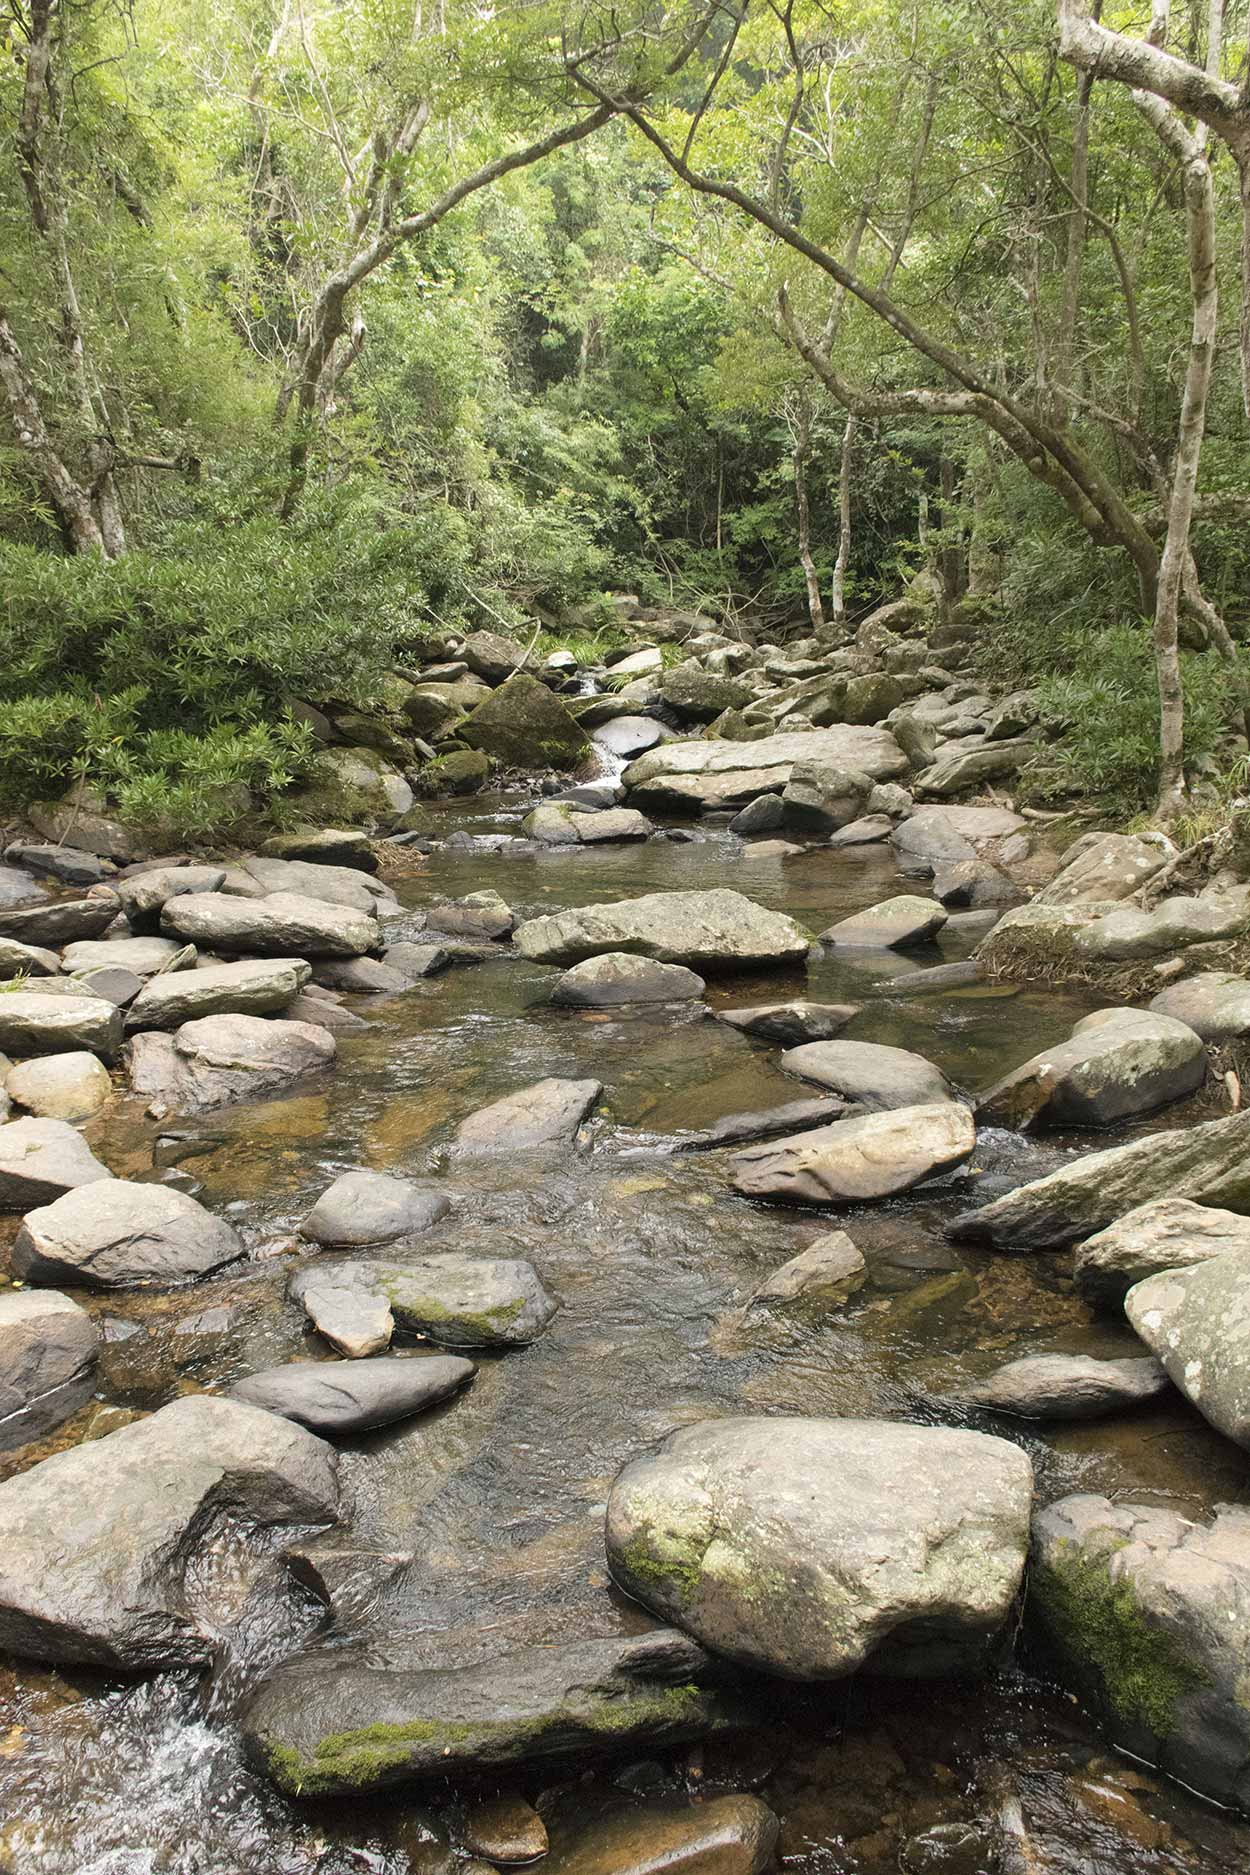 Brides Pool stream, Plover Cove Reservoir Country Trail, Hong Kong, China